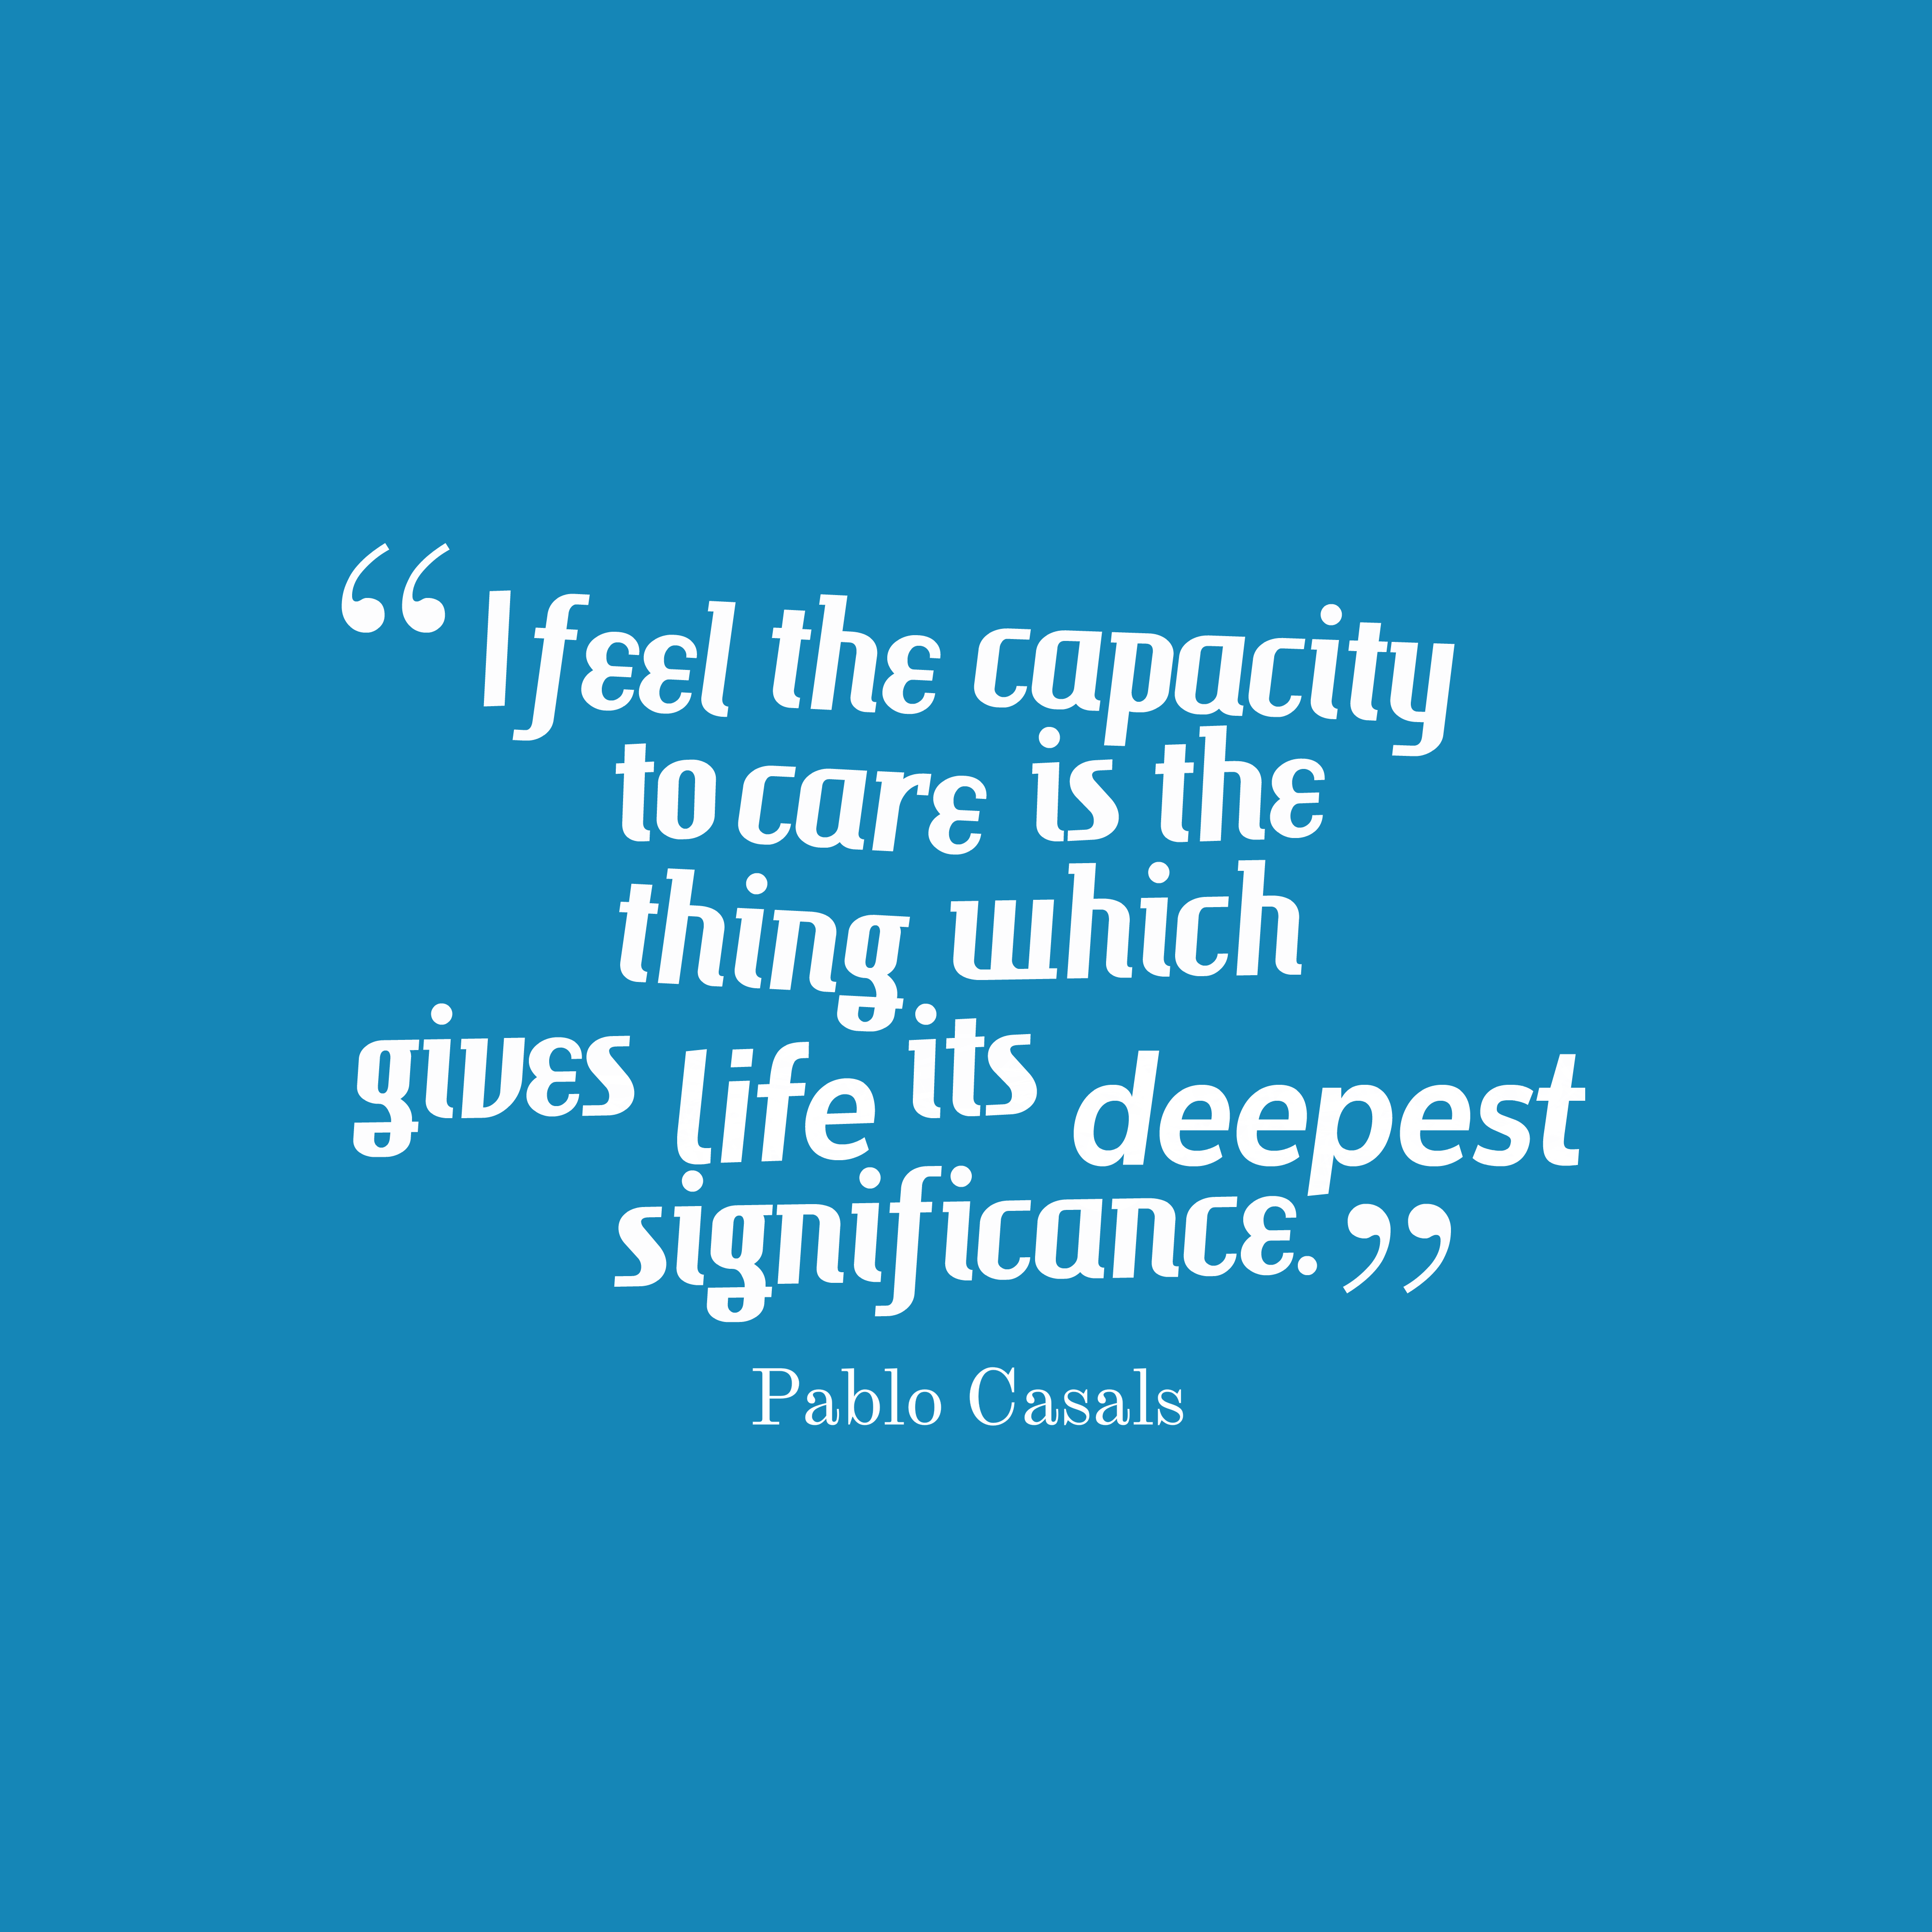 Pablo Casals quote about caring.